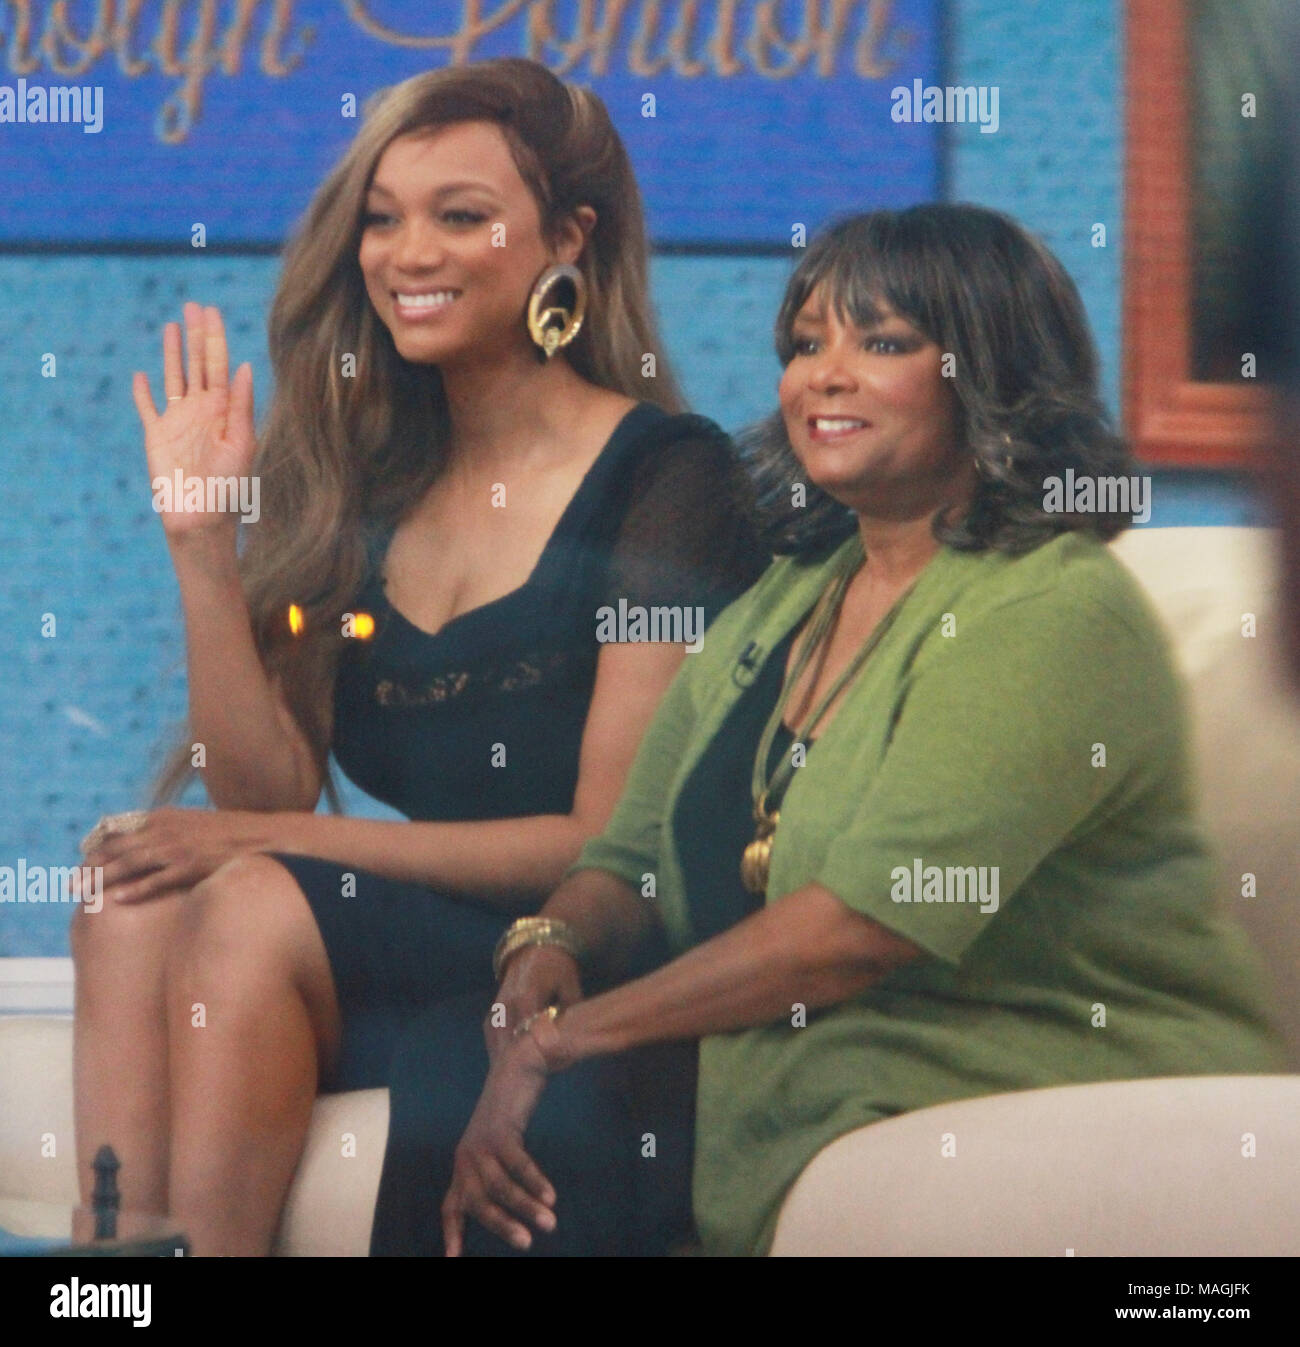 Tyra Banks Promotes New Book With Her Bra On Show: Tyra Banks Show Stock Photos & Tyra Banks Show Stock